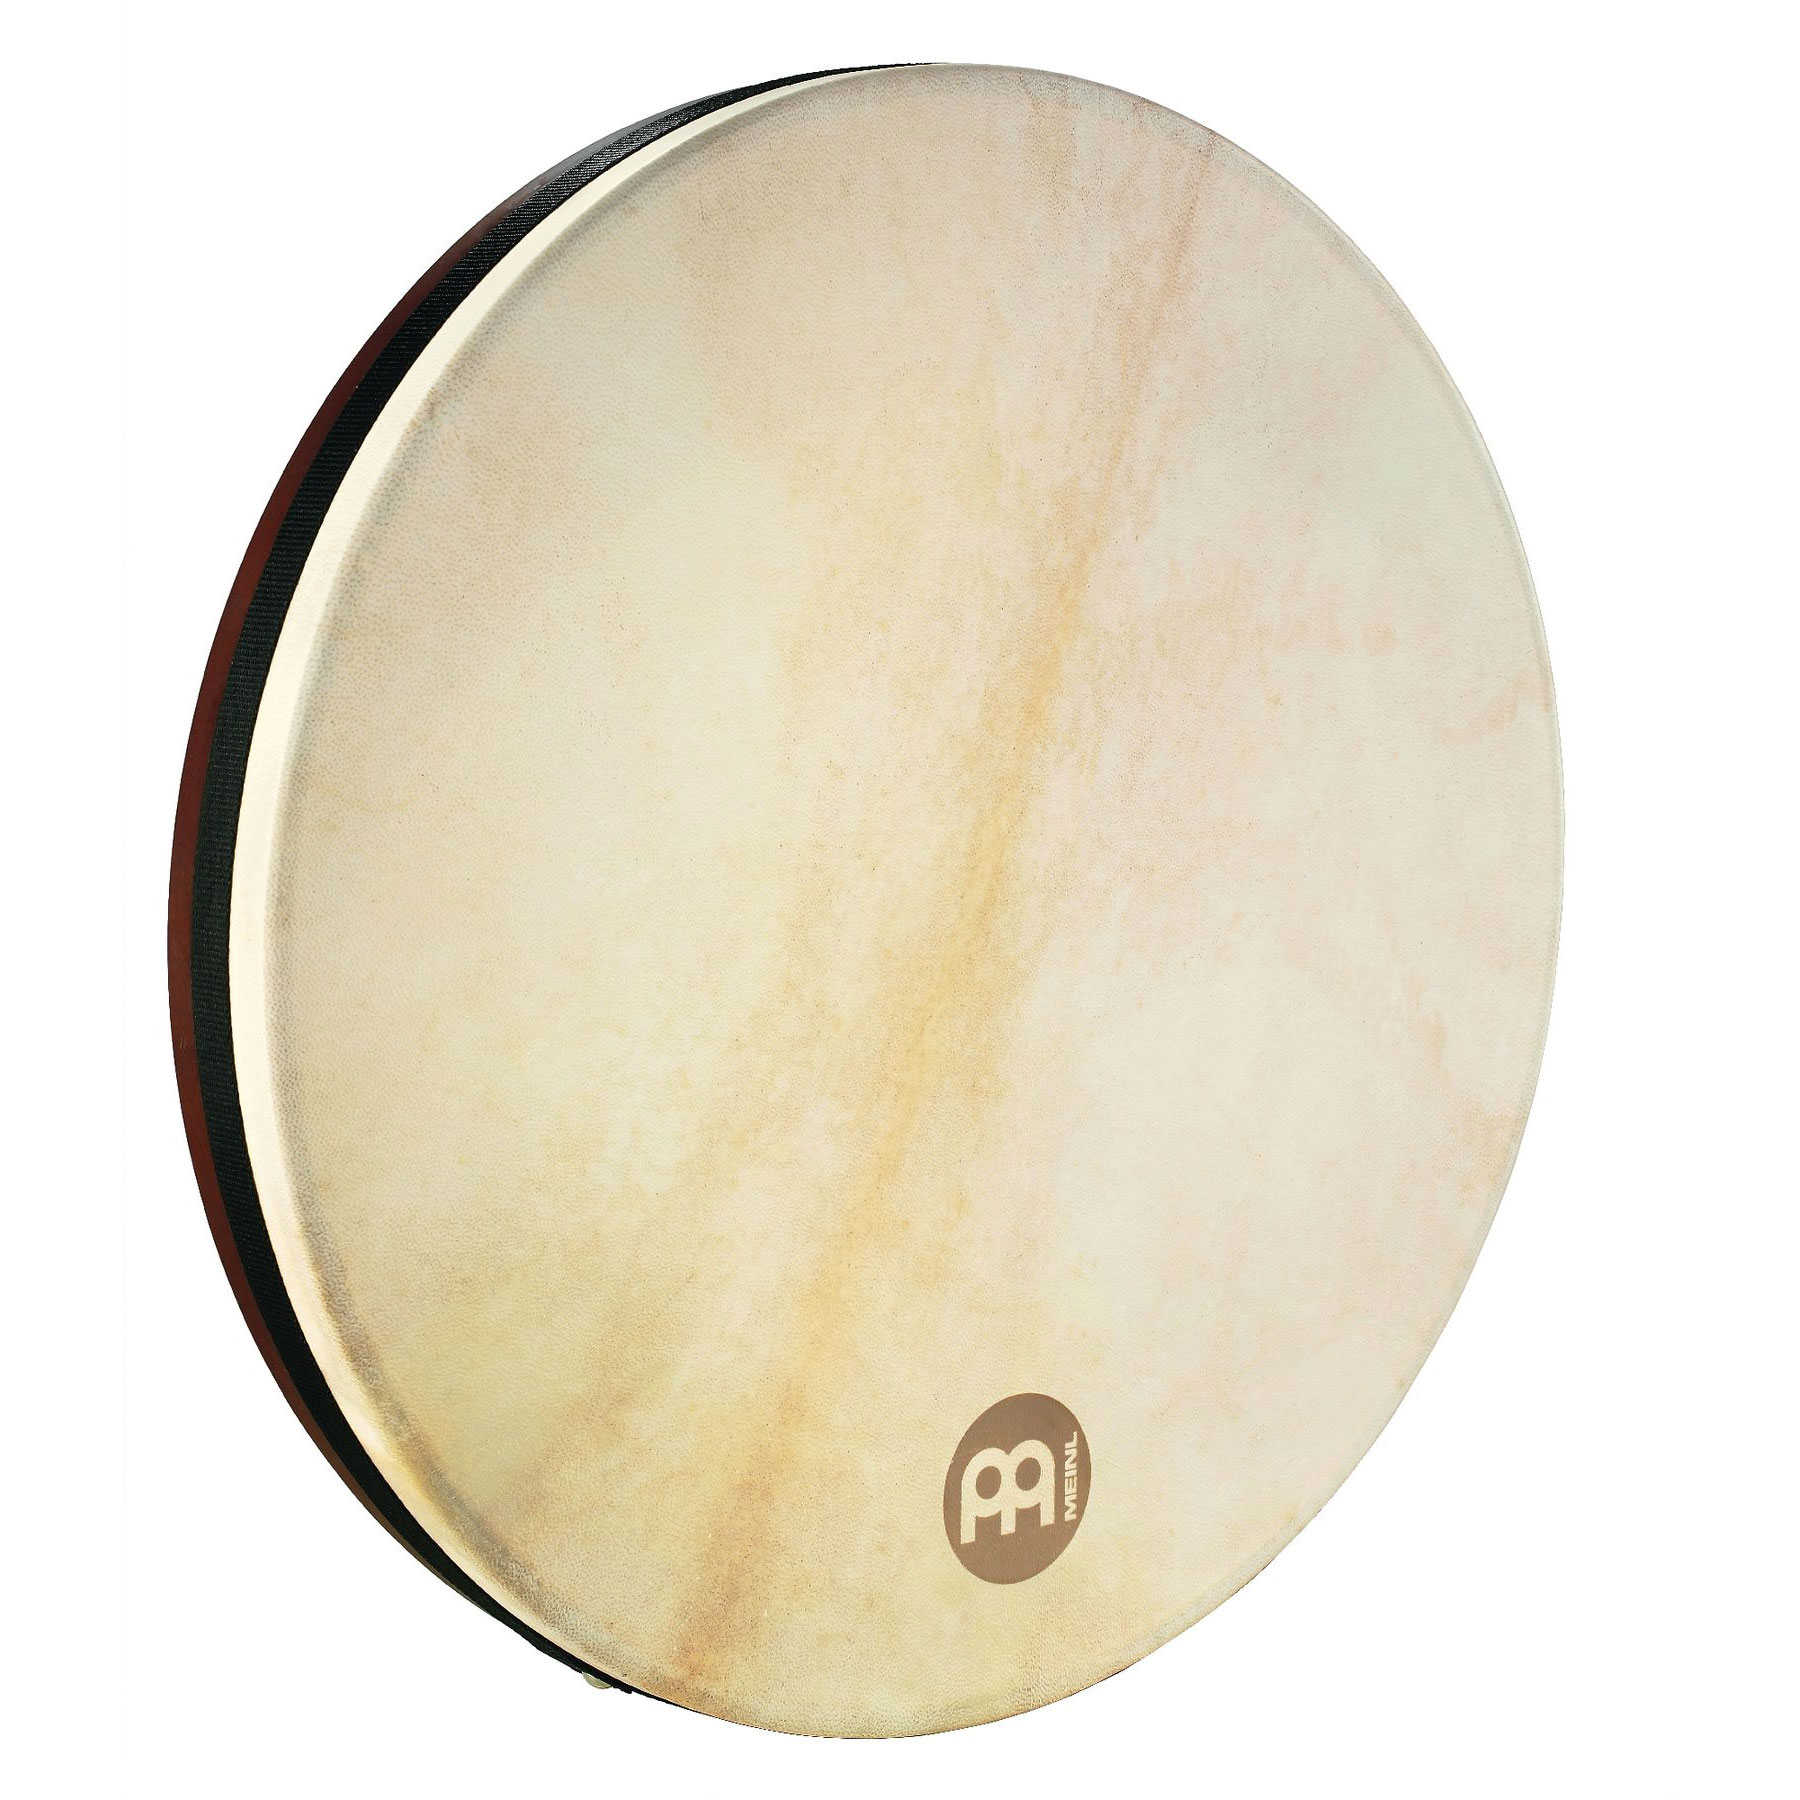 "Meinl 18"" Tar Tunable Frame Drum"